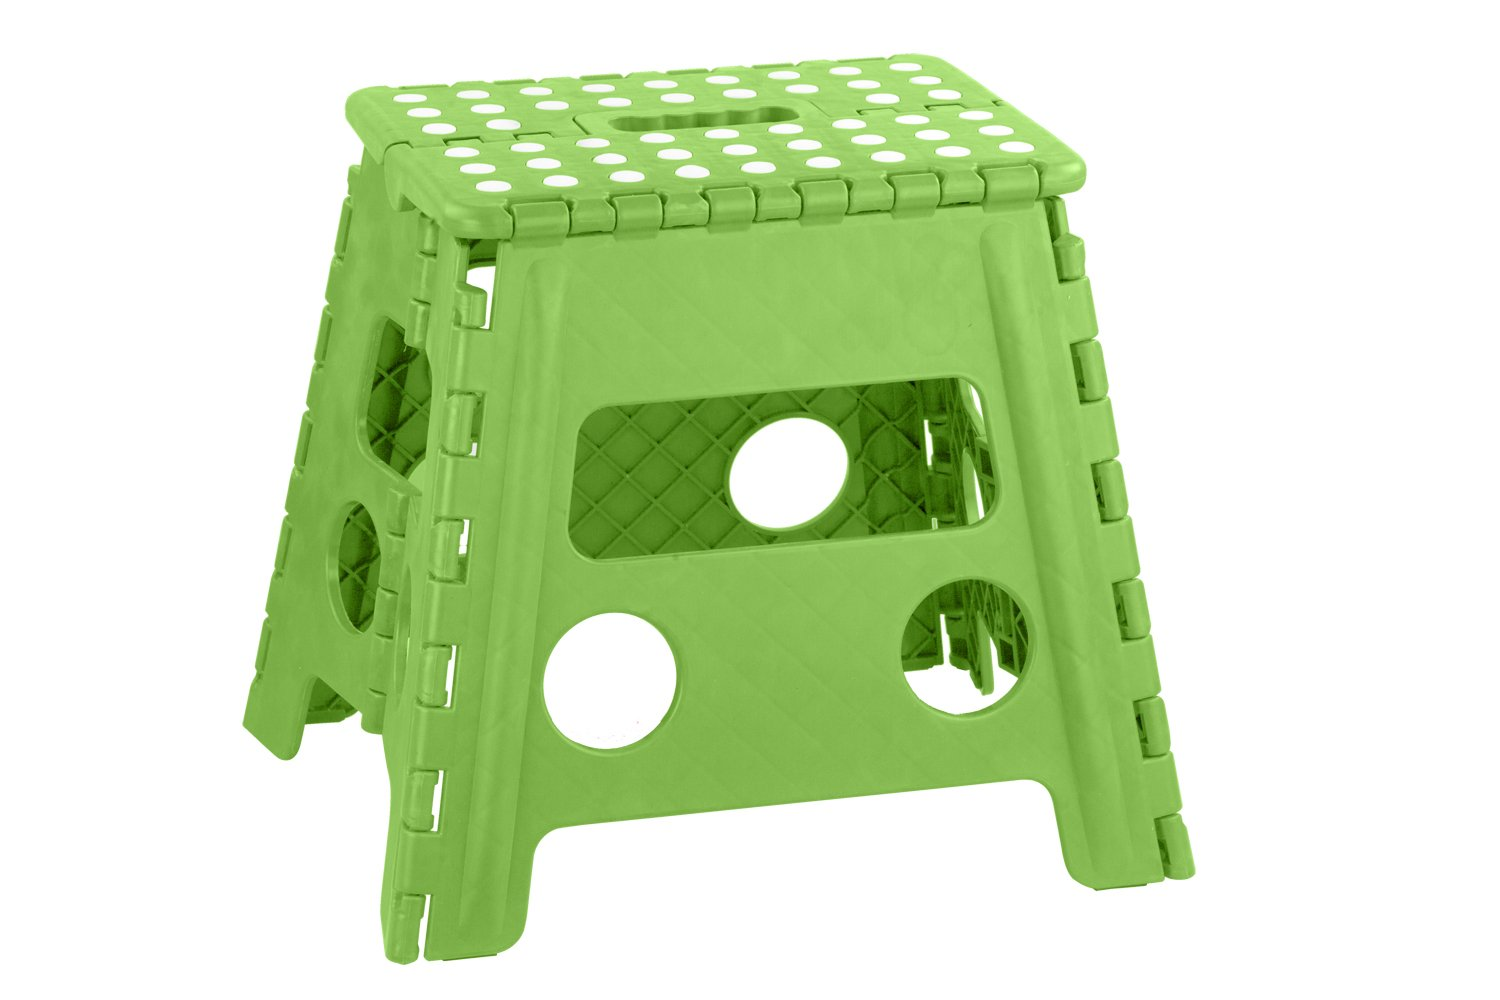 Home Basics FS10859-Grn Bright Folding Stool with Non-Slip Dots, Large, Green